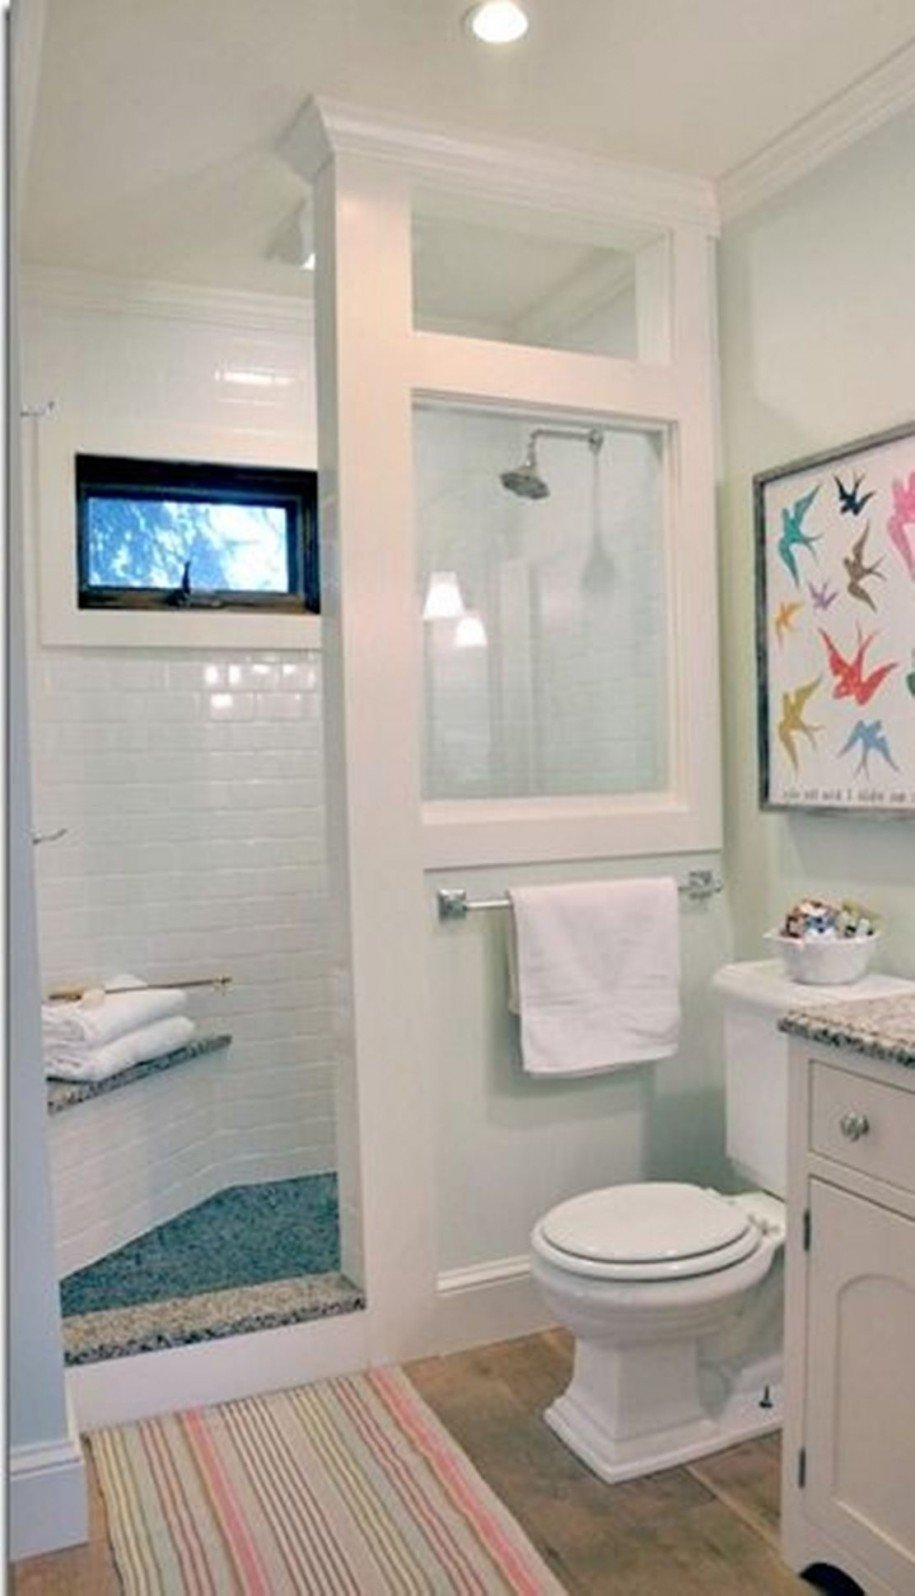 10 Nice Remodeling Bathroom Ideas For Small Bathrooms shower small bathroom walk in shower ideas tile with remodeling 2020